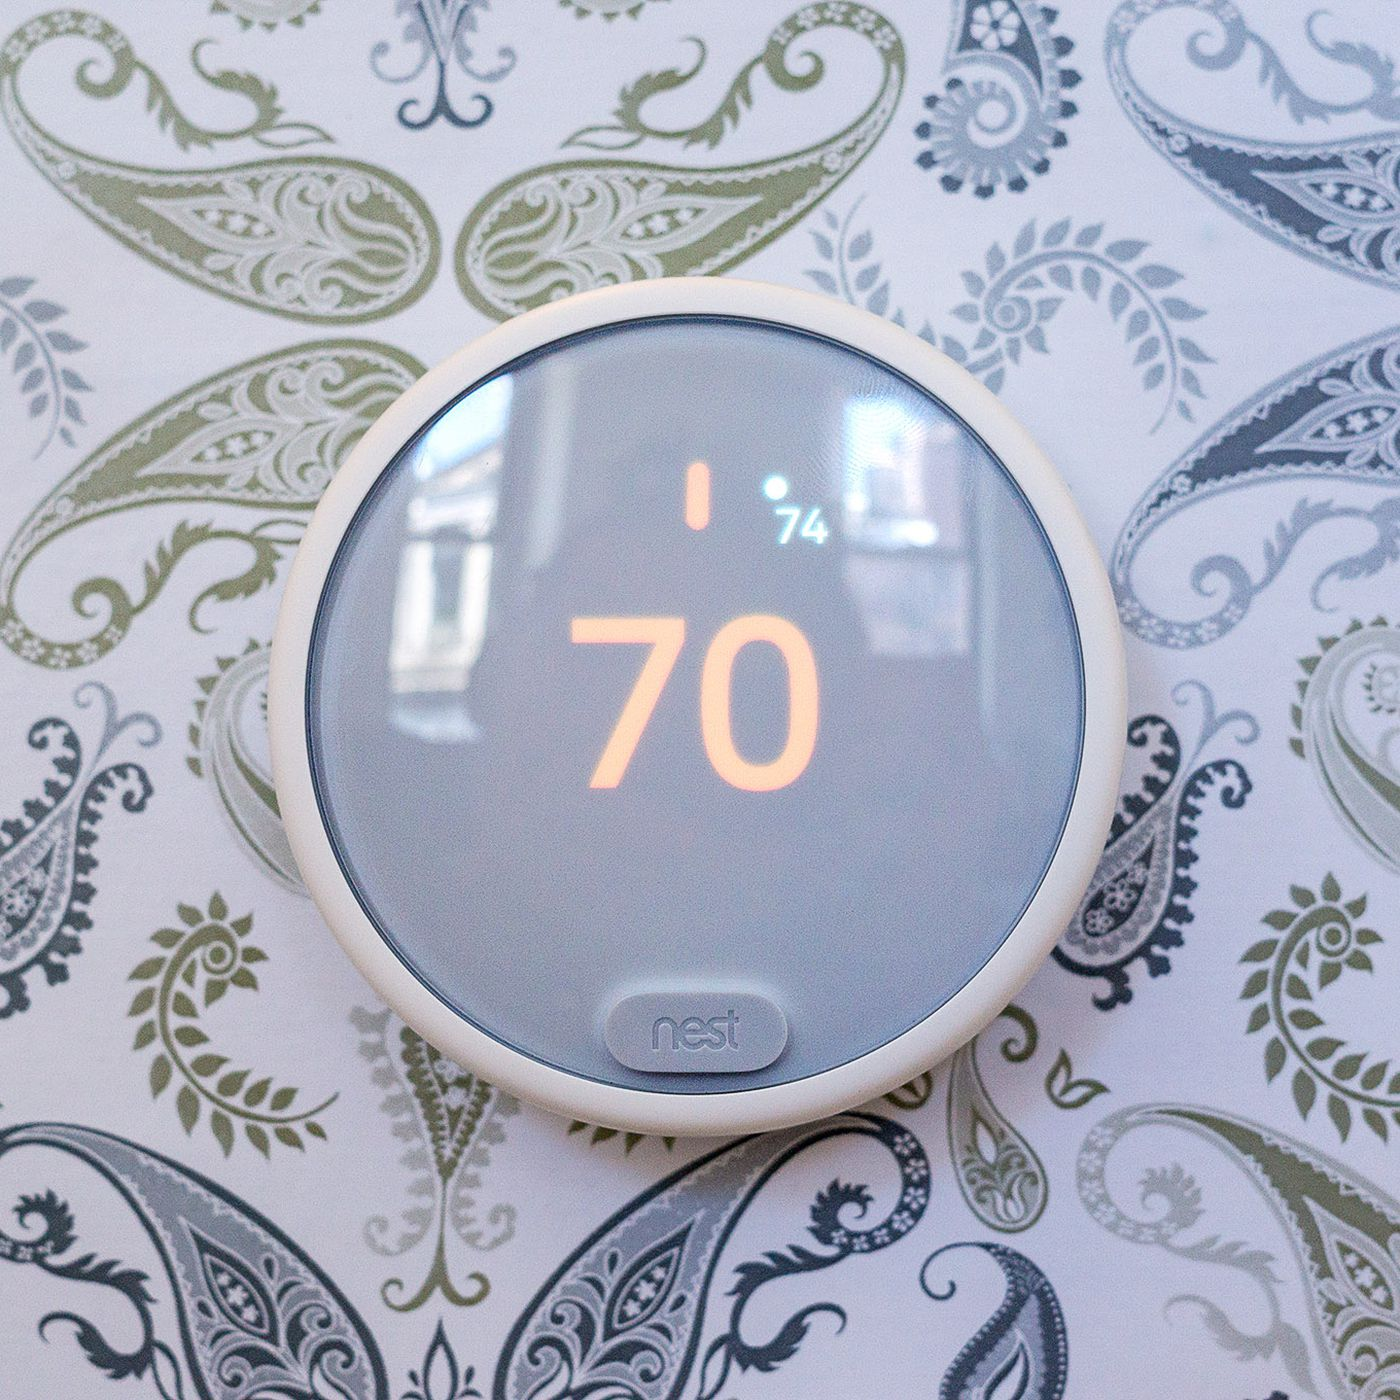 Nest's cheaper thermostat is better than the original - The